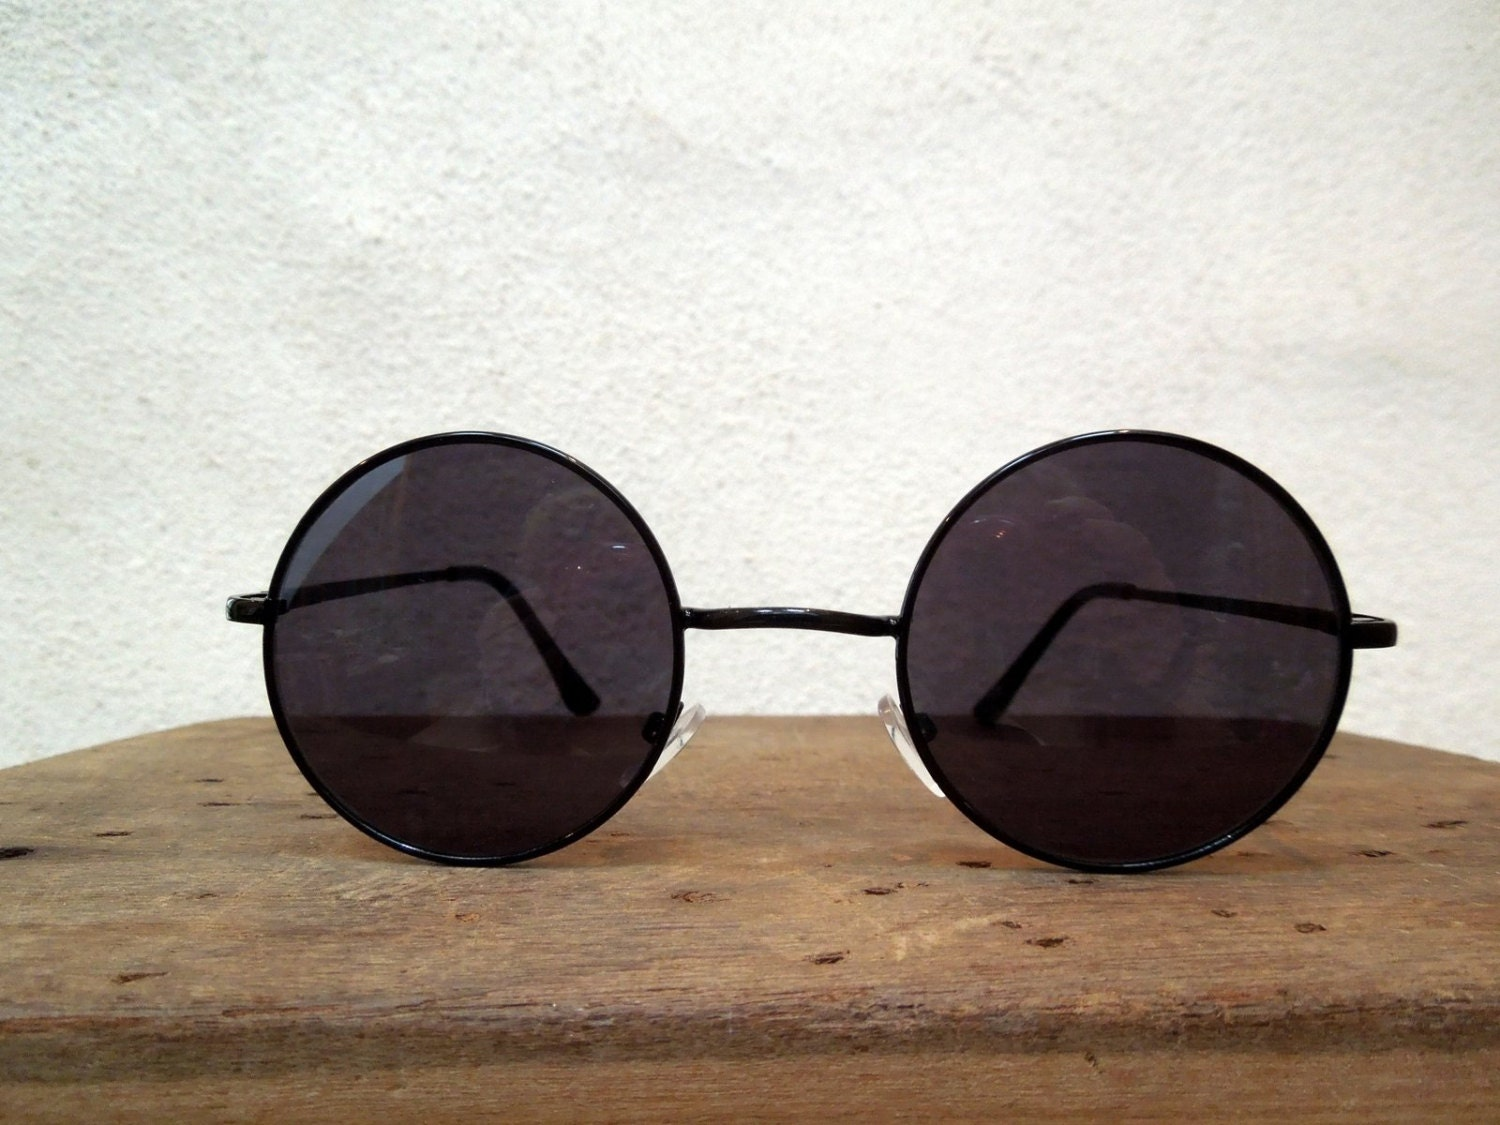 Eyeglass Frames Little Rock : JOHN LENNON with black glasses and frame, teashades ...